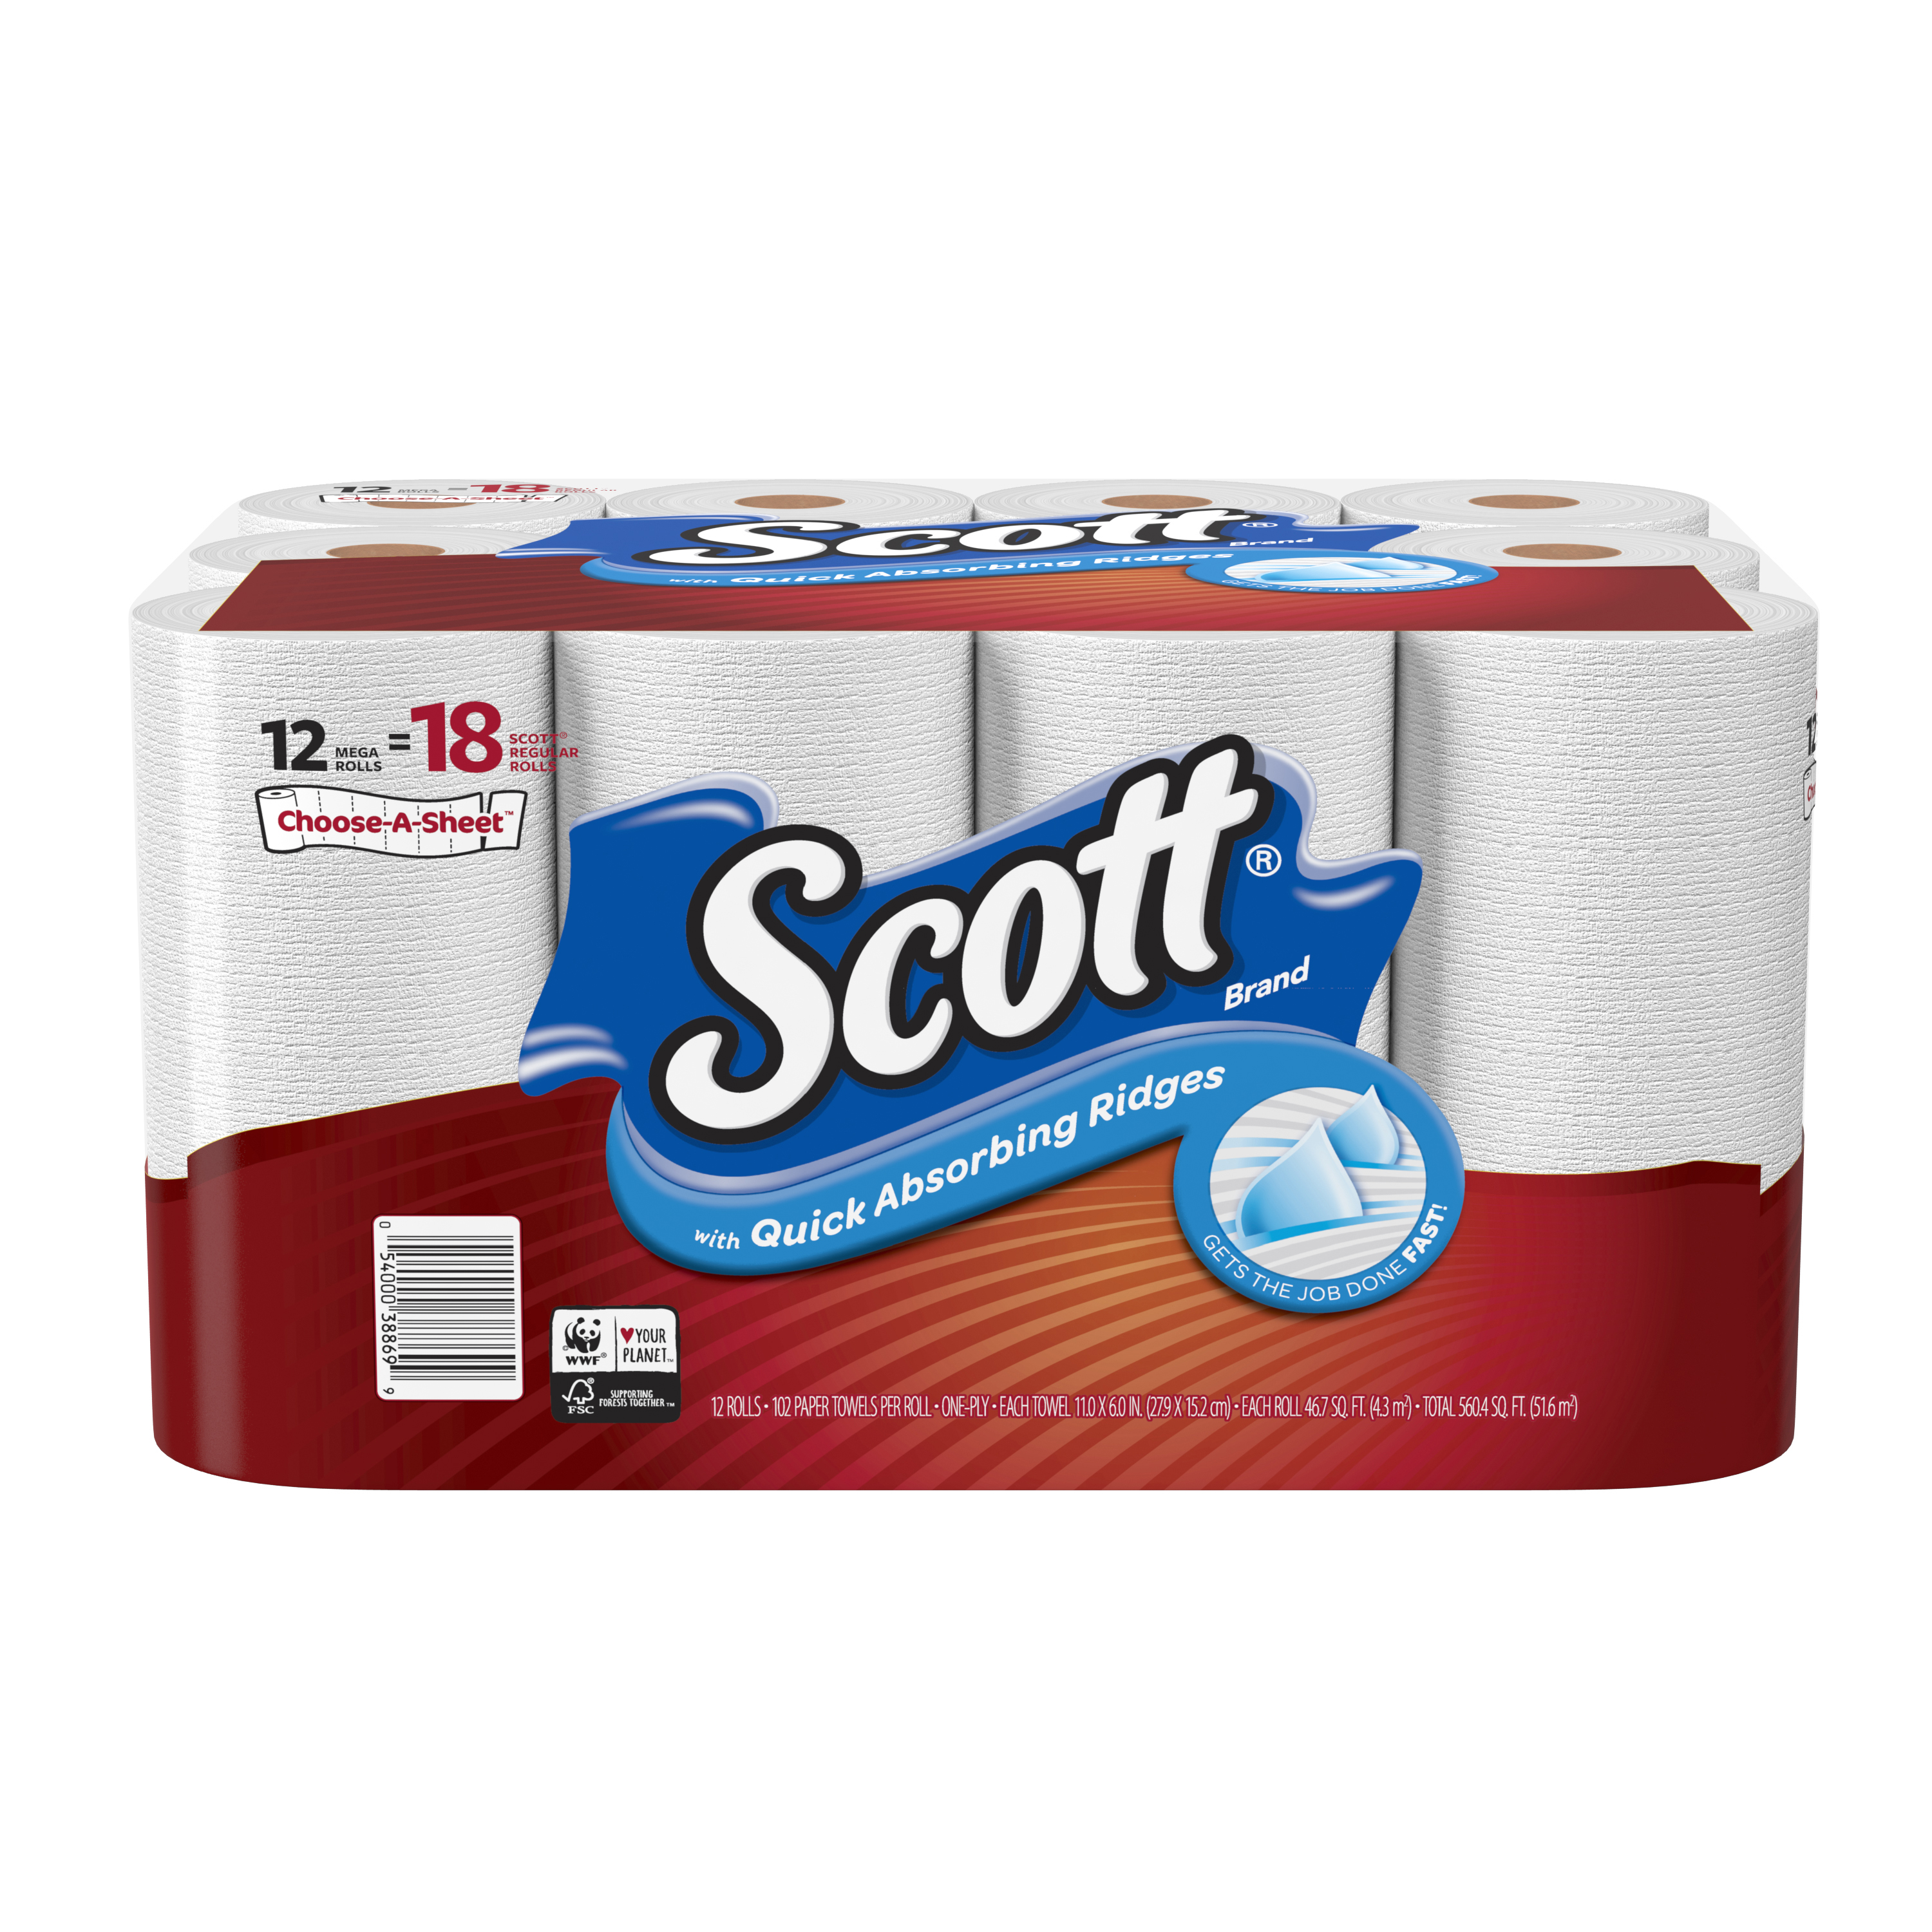 Scott Paper Towels, Choose-A-Sheet, 12 Mega Rolls